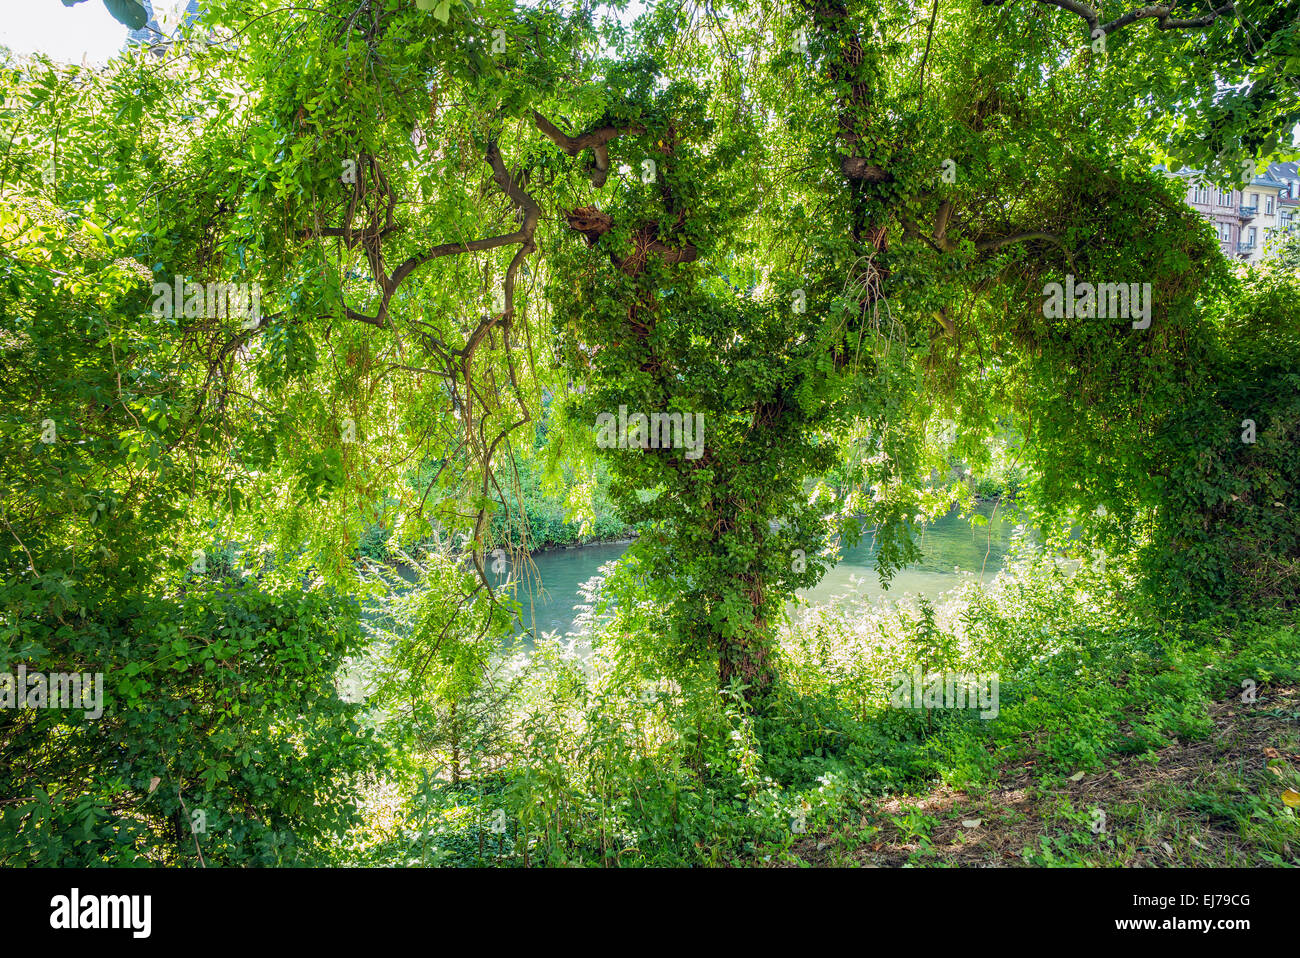 Green vegetation at the water's edge of the Aar river Strasbourg Alsace France Europe - Stock Image